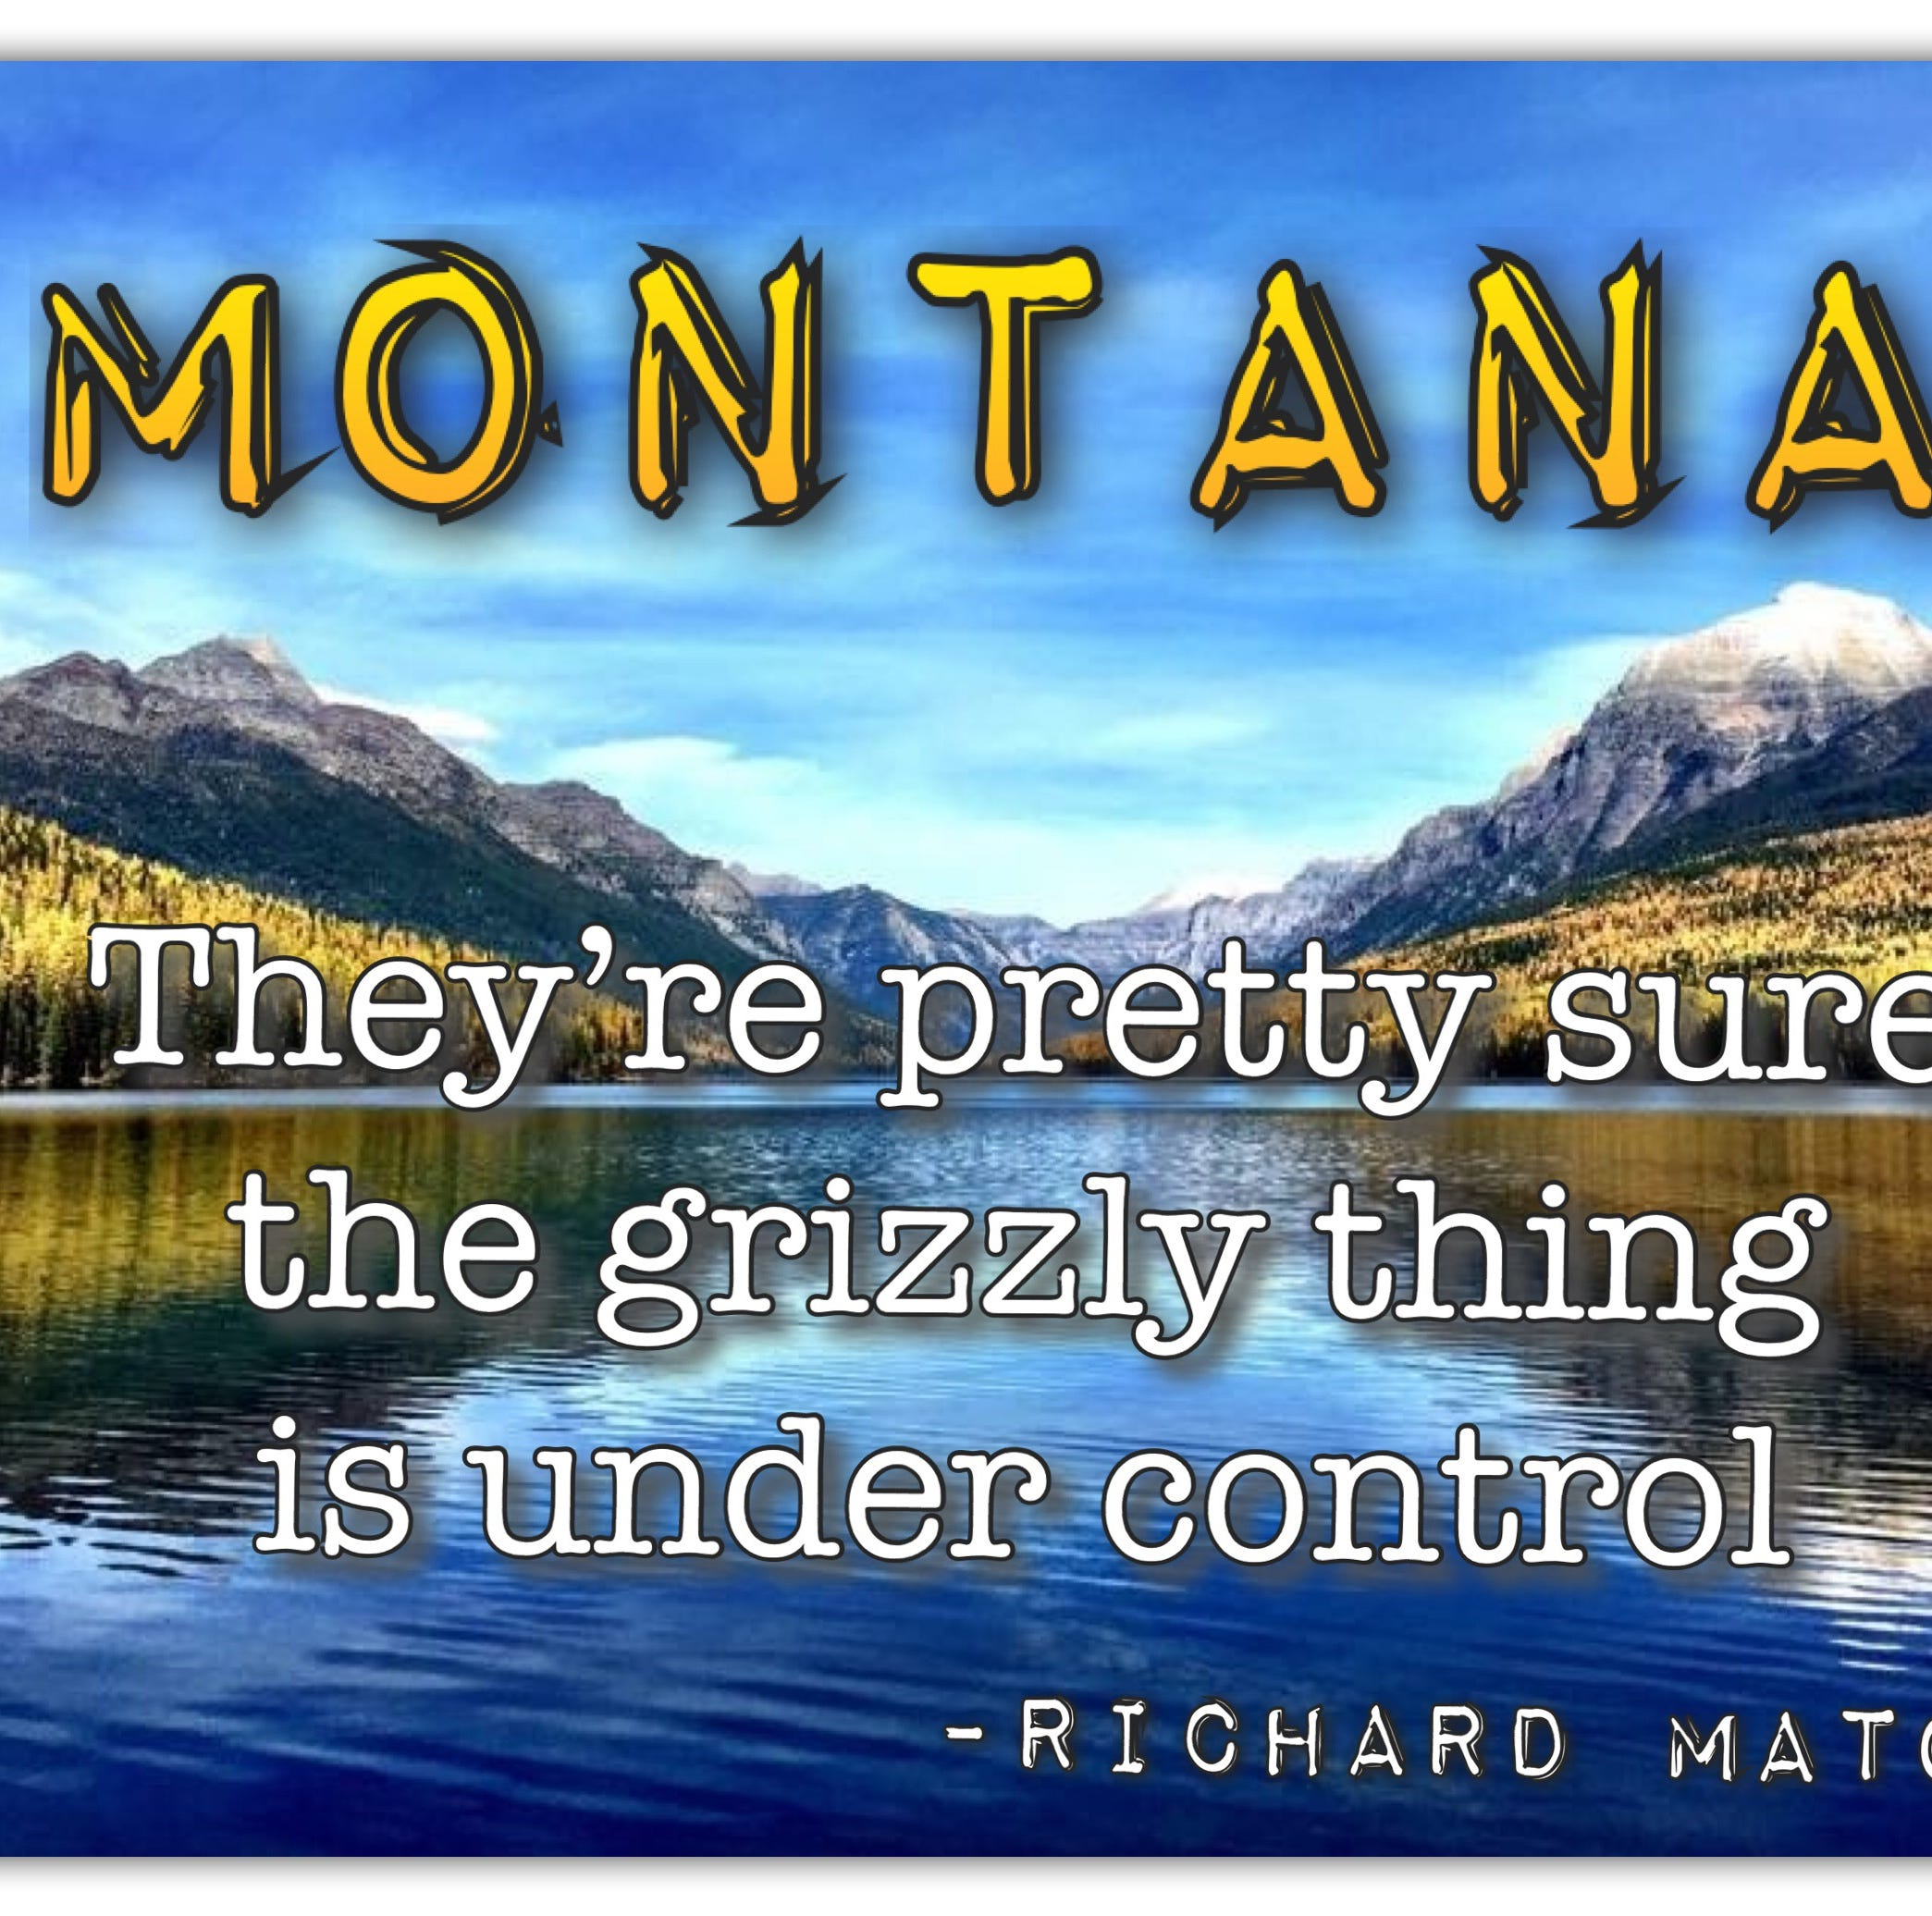 Big, beautiful and bear-y full of tourists: Readers suggest slogans for Montana